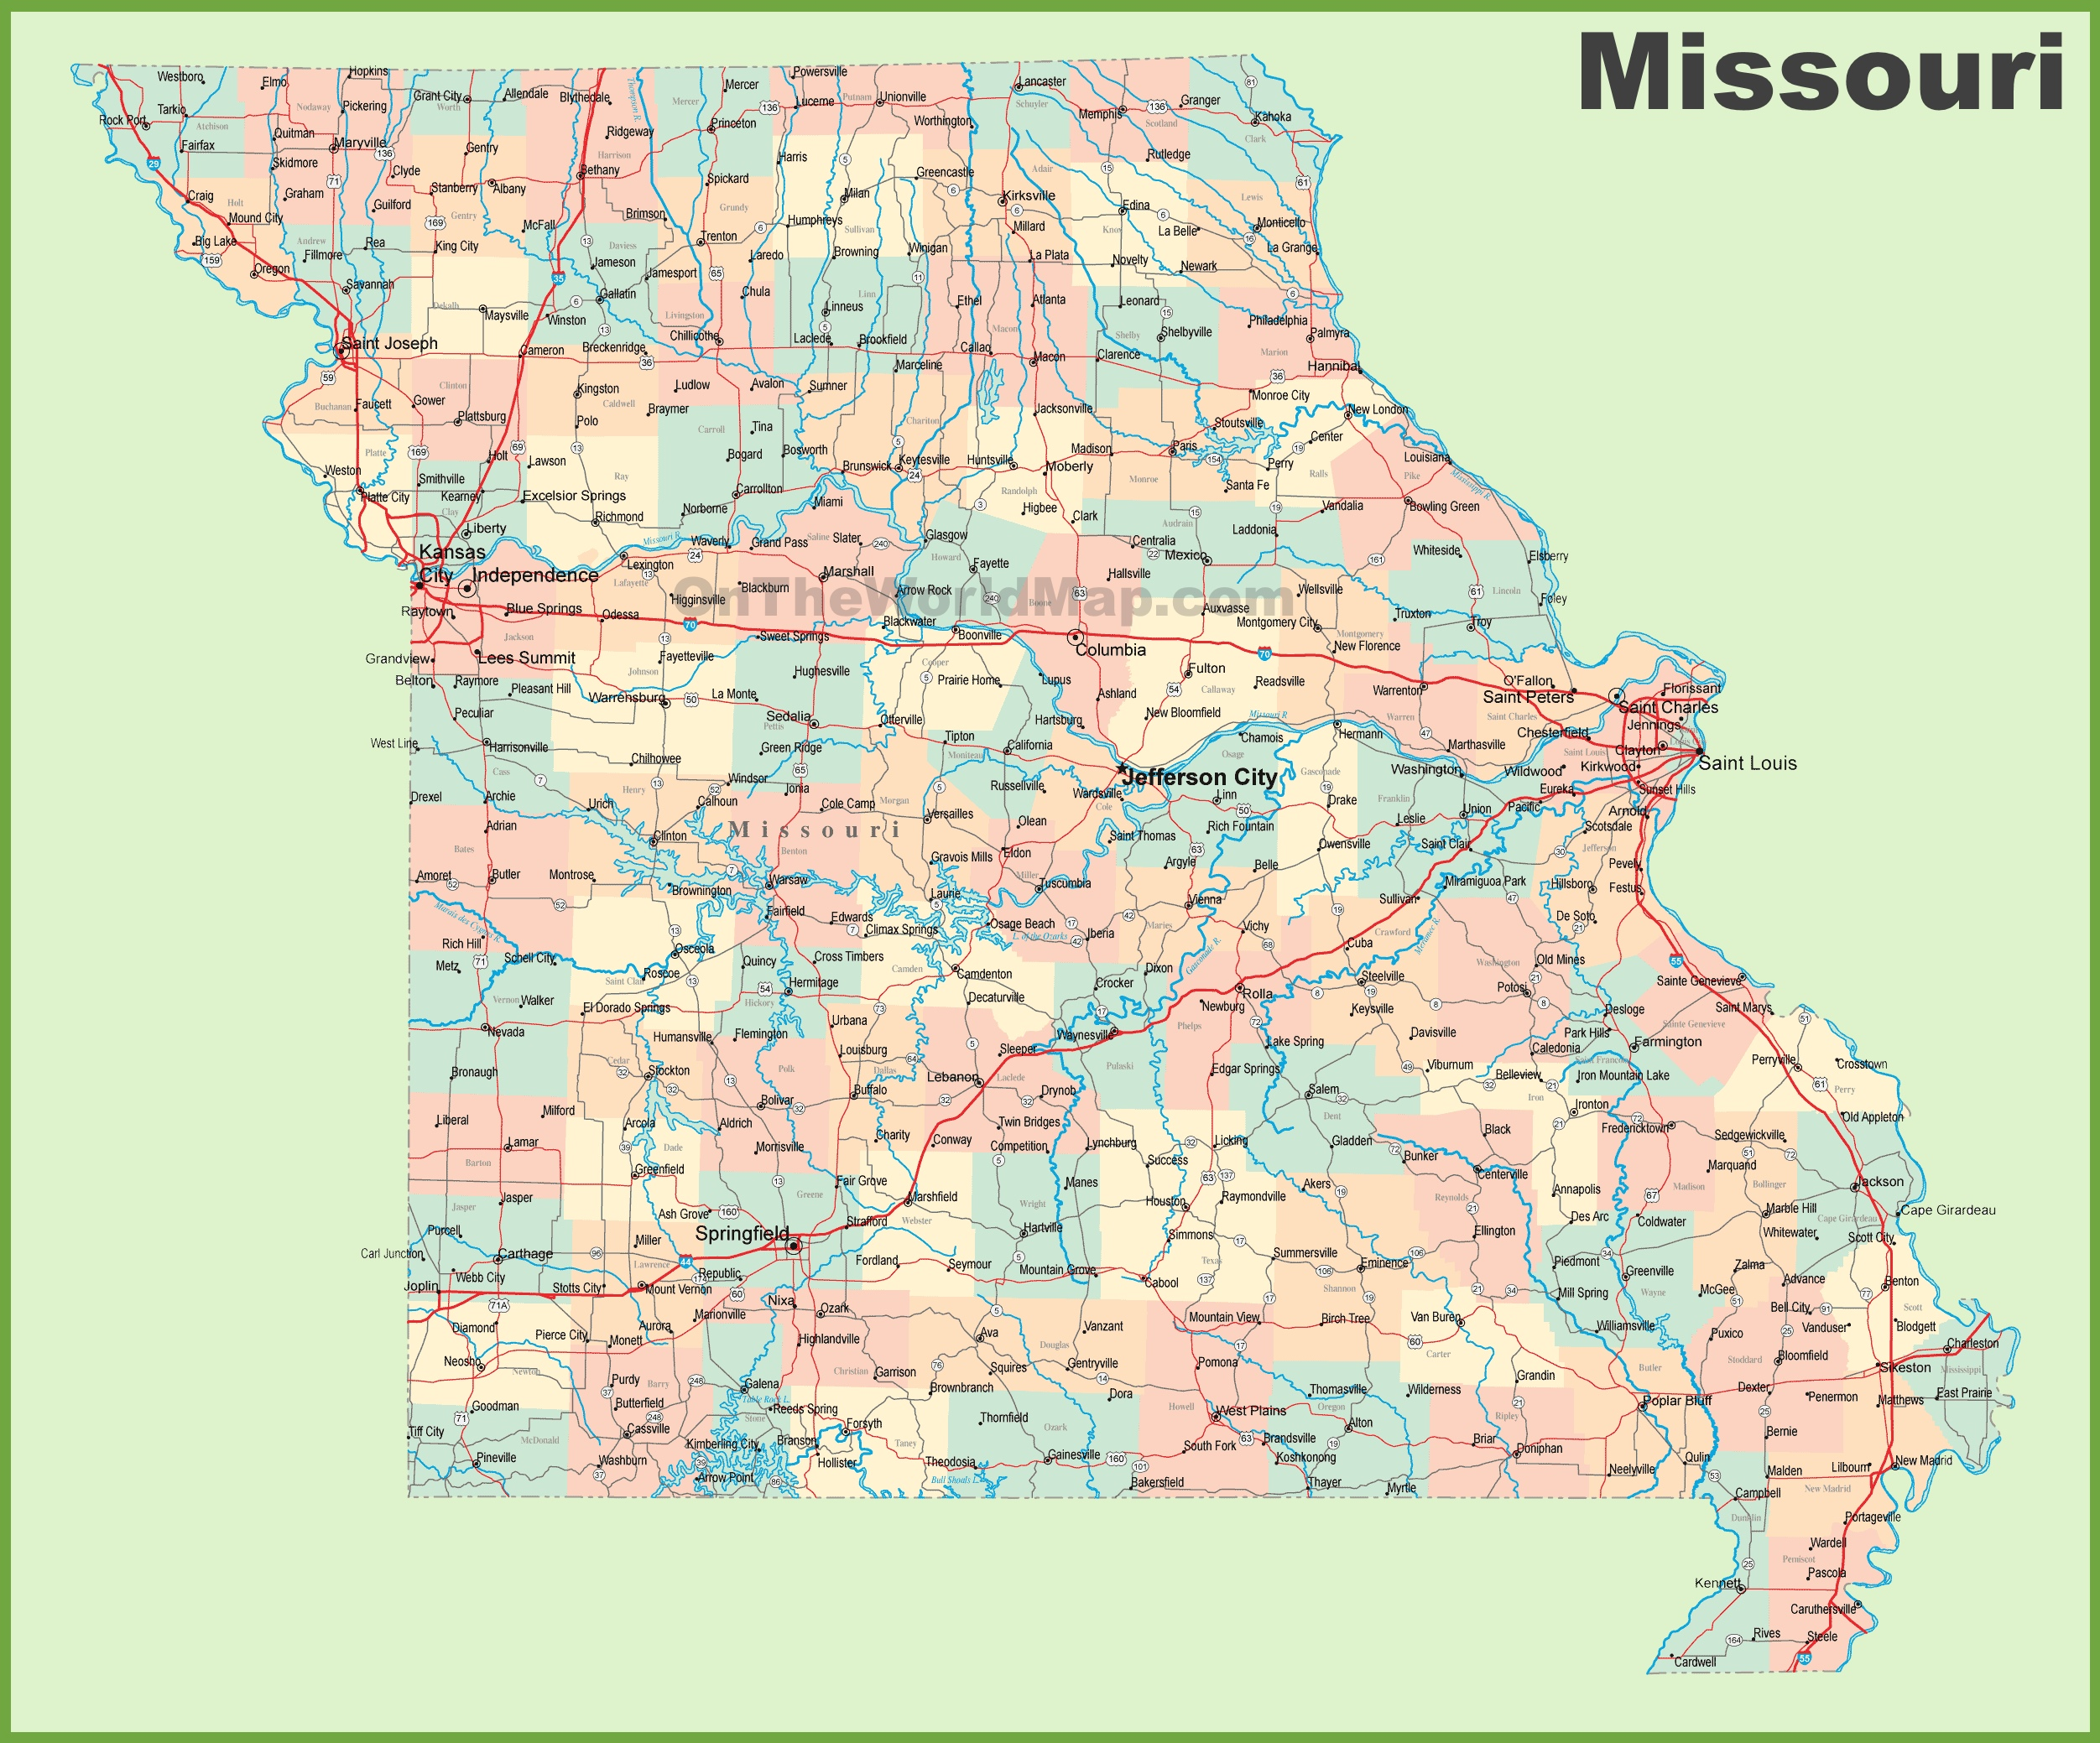 Road Map Of Missouri With Cities - Mossouri map